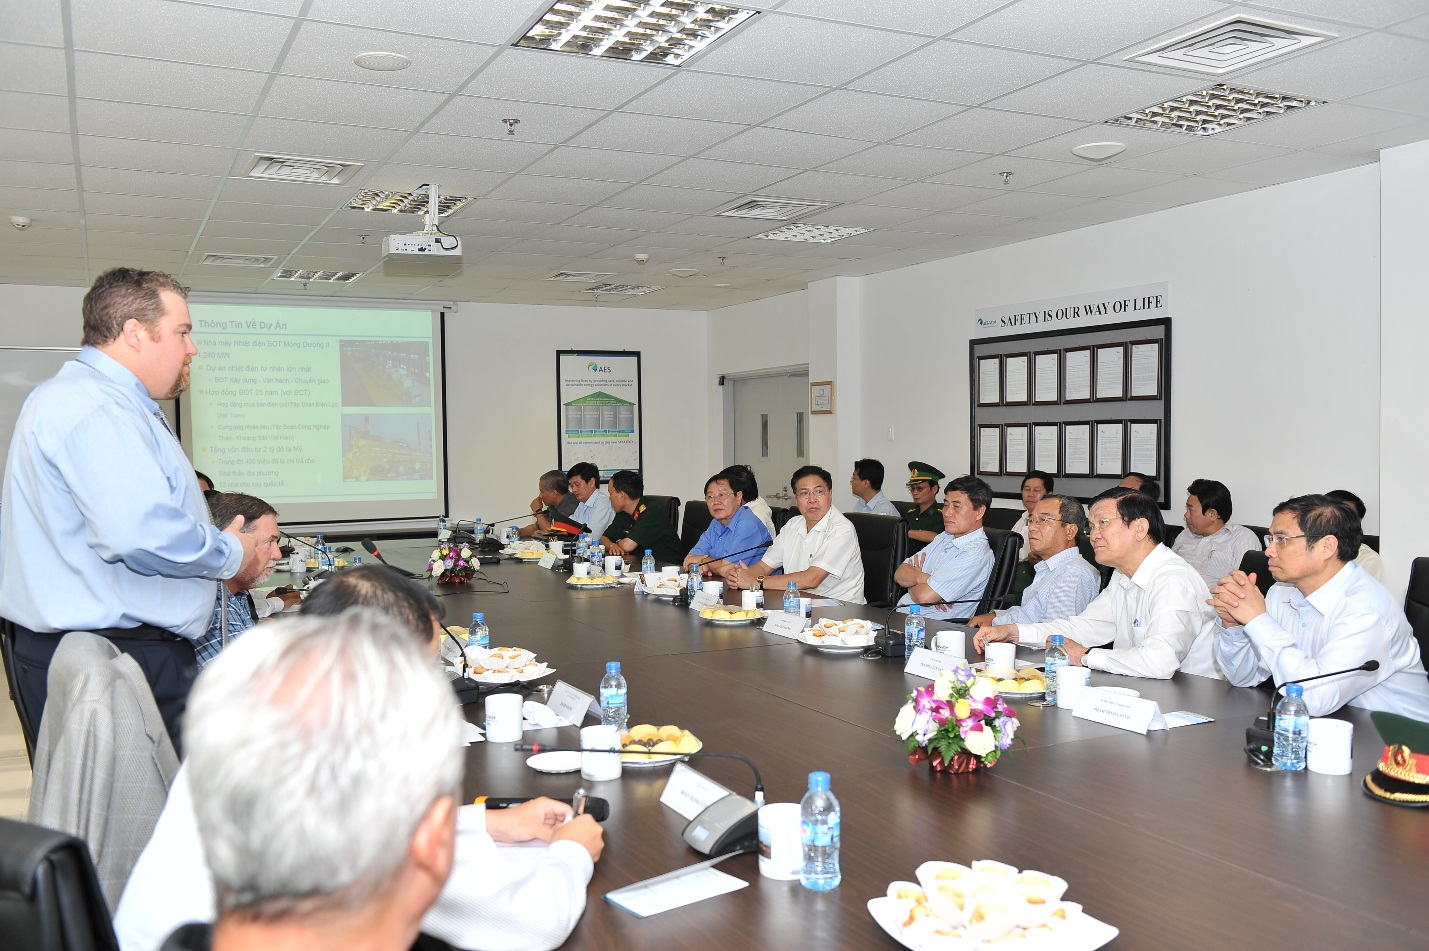 The Managing Director, Mr. David Stone, reported to President Truong Tan Sang on the Project's progress